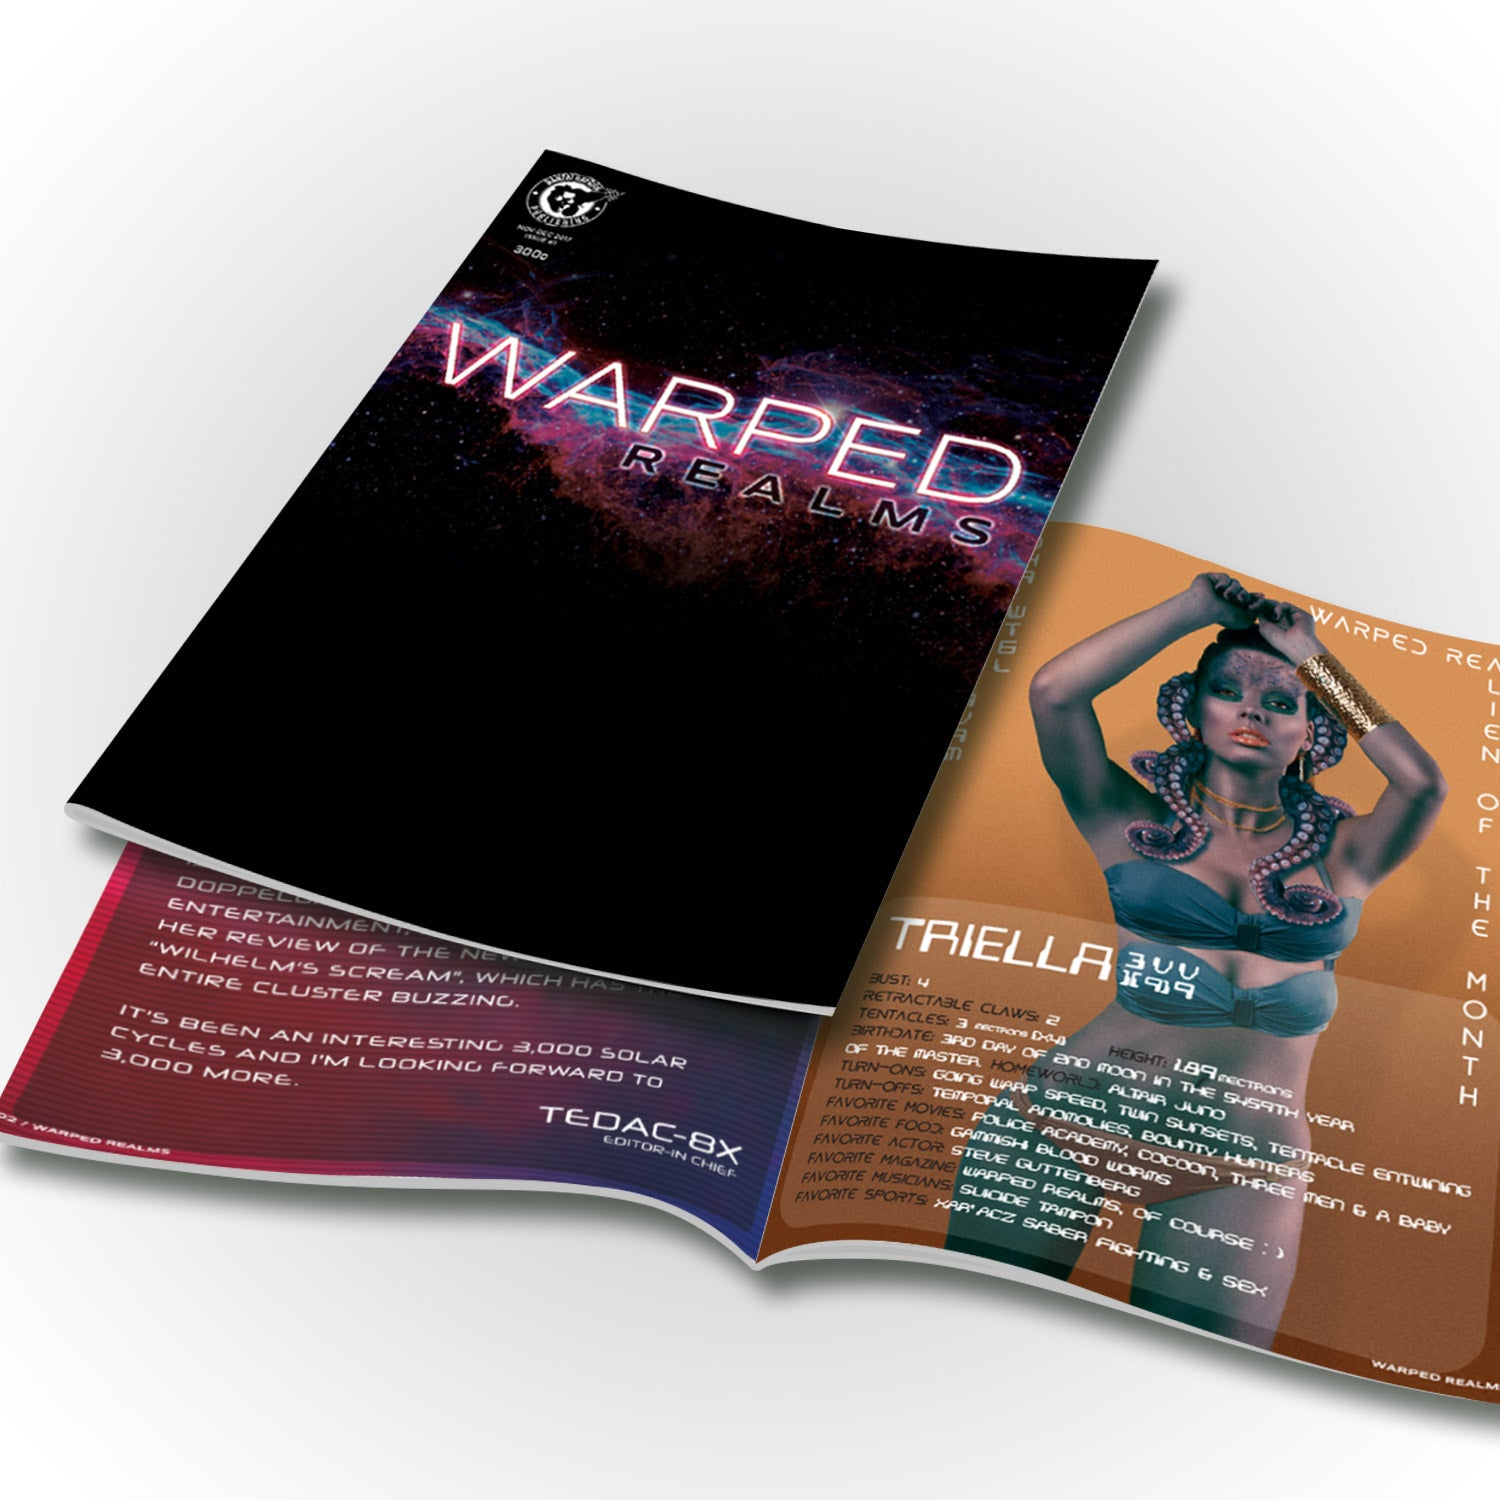 Image of Warped Realms Issue #1